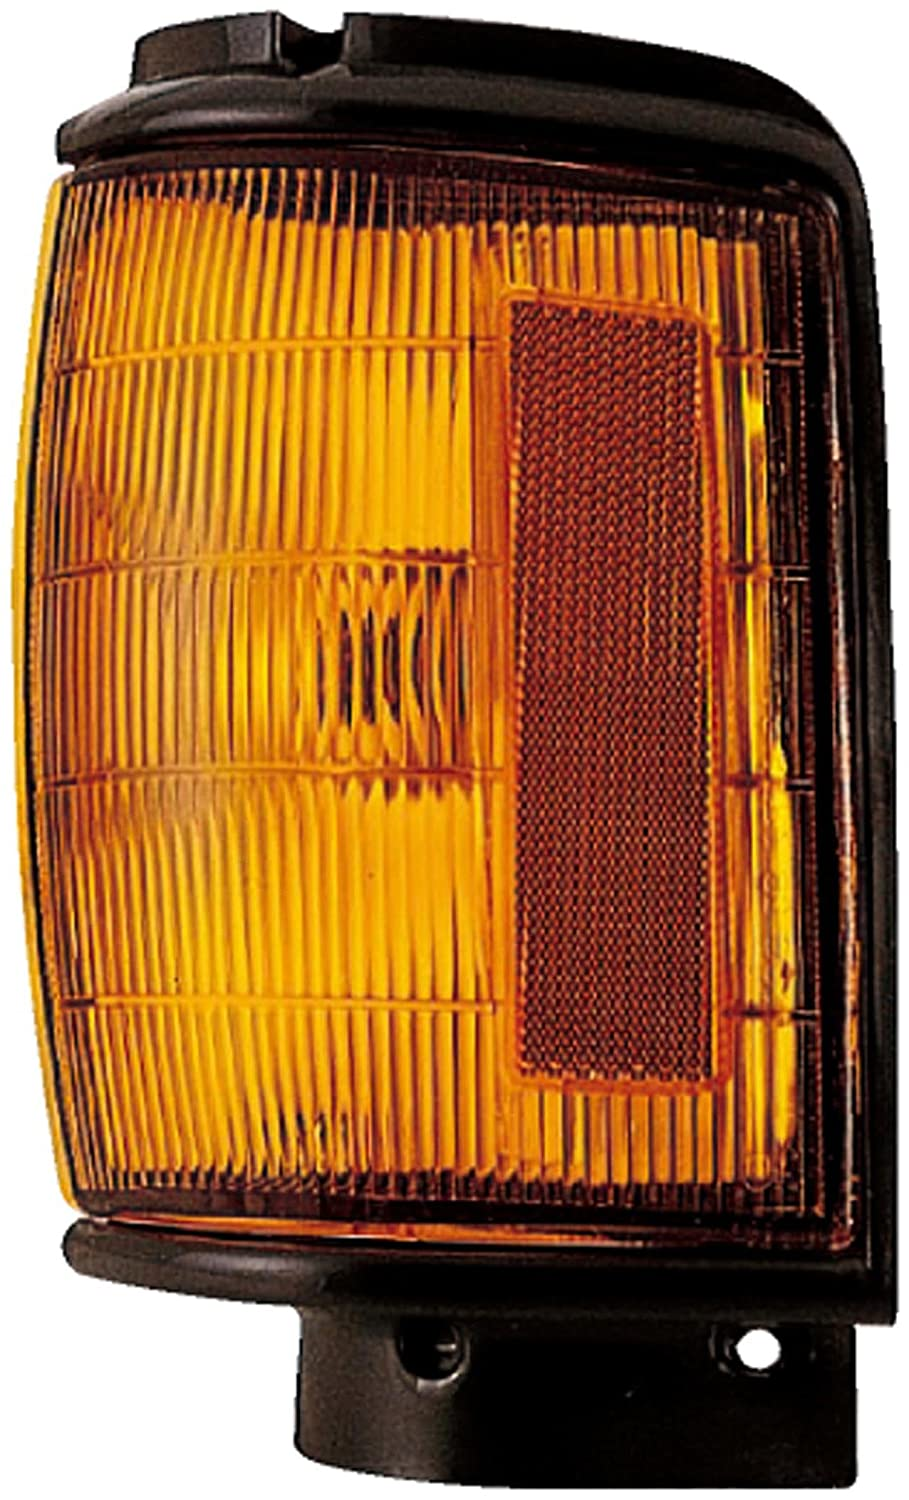 Dorman 1630686 Toyota Front Driver Side Parking / Turn Signal Light Assembly